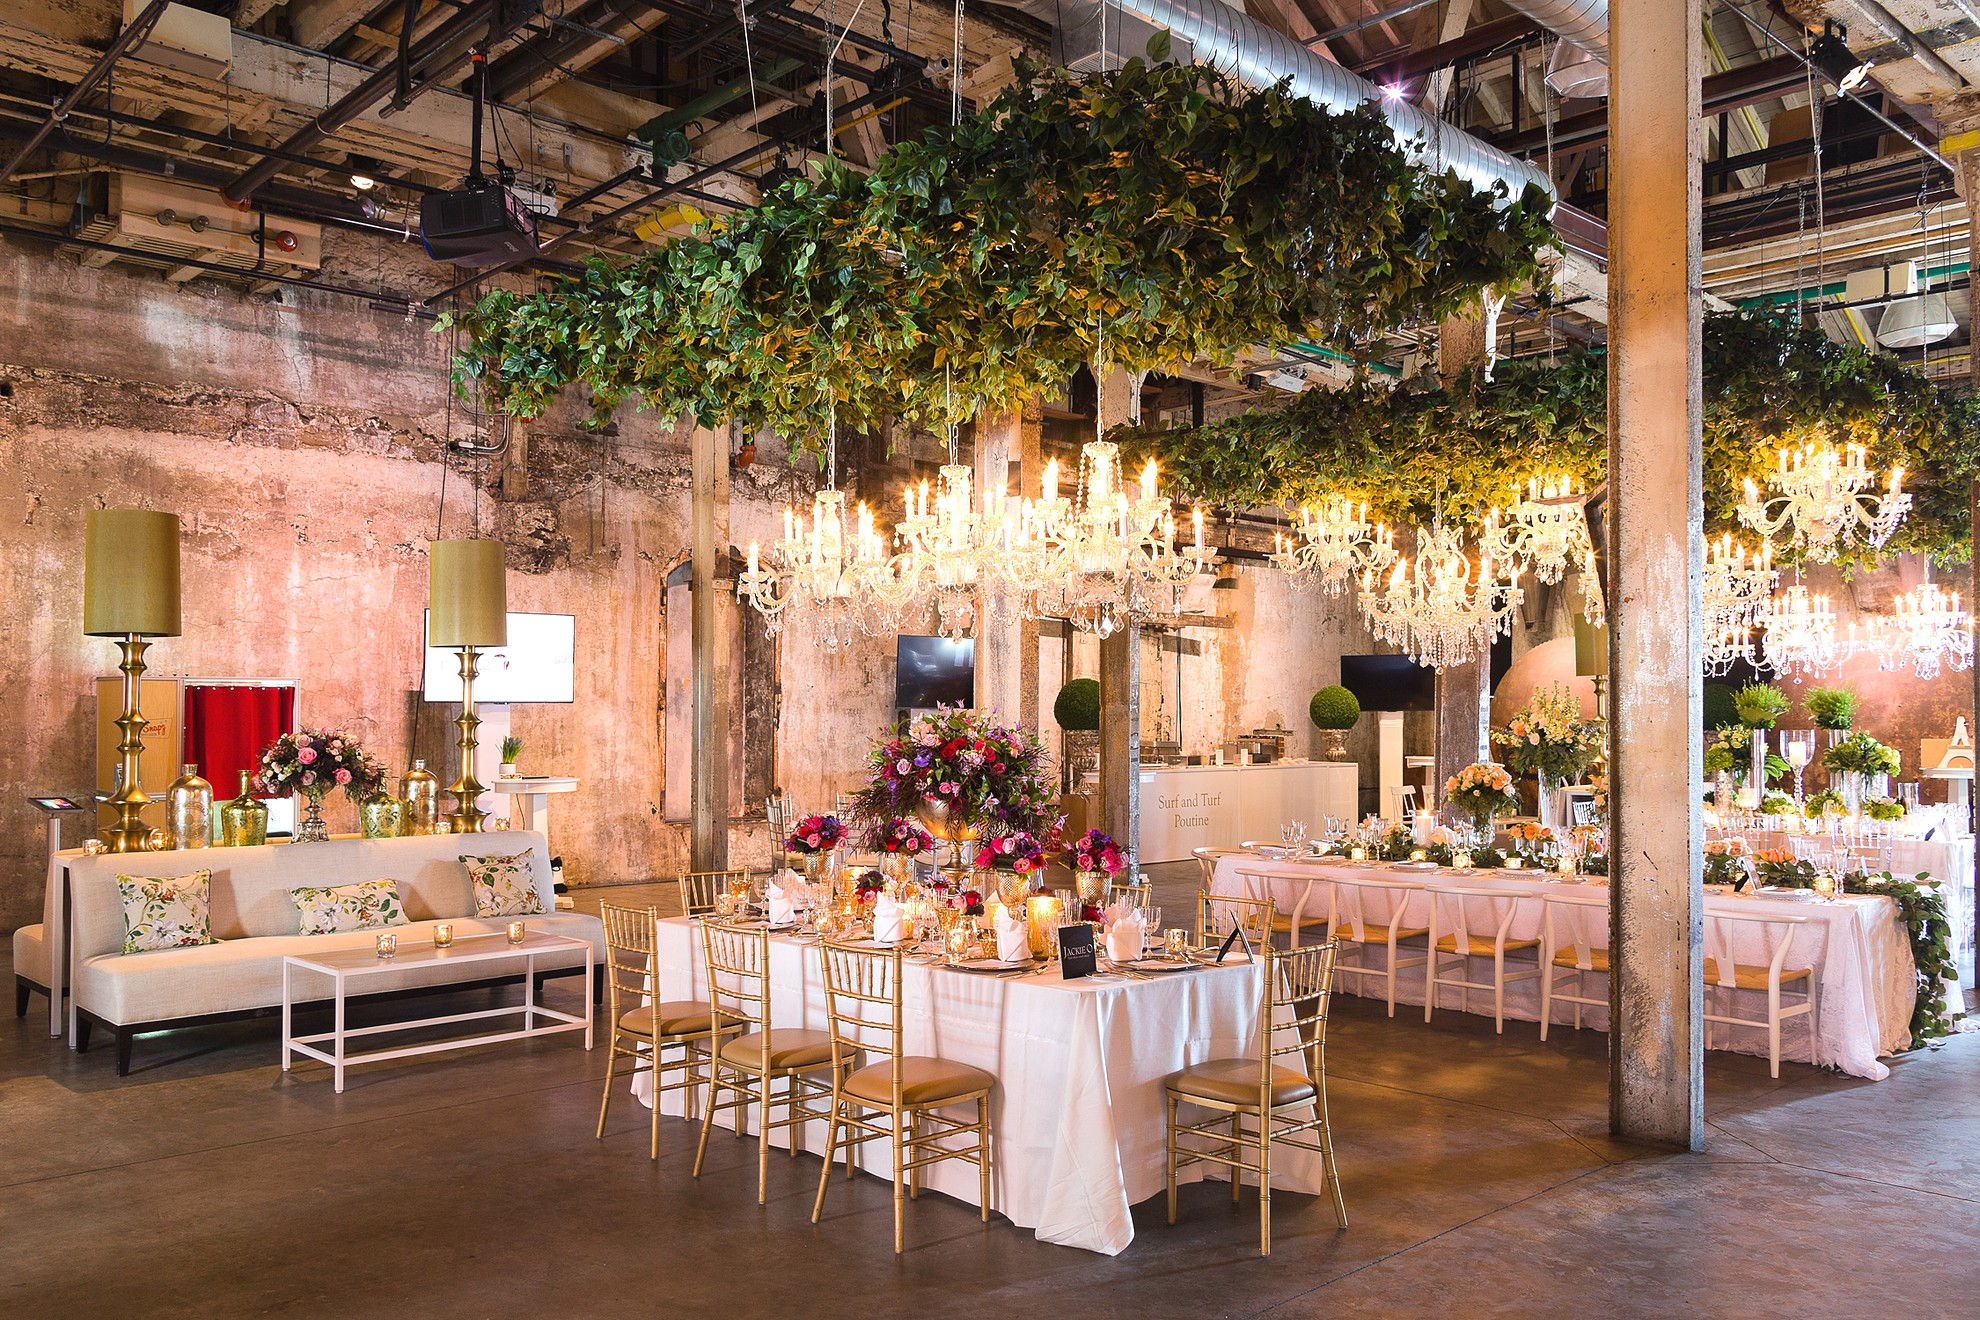 & 2016 Wedding Open House at The Fermenting Cellar